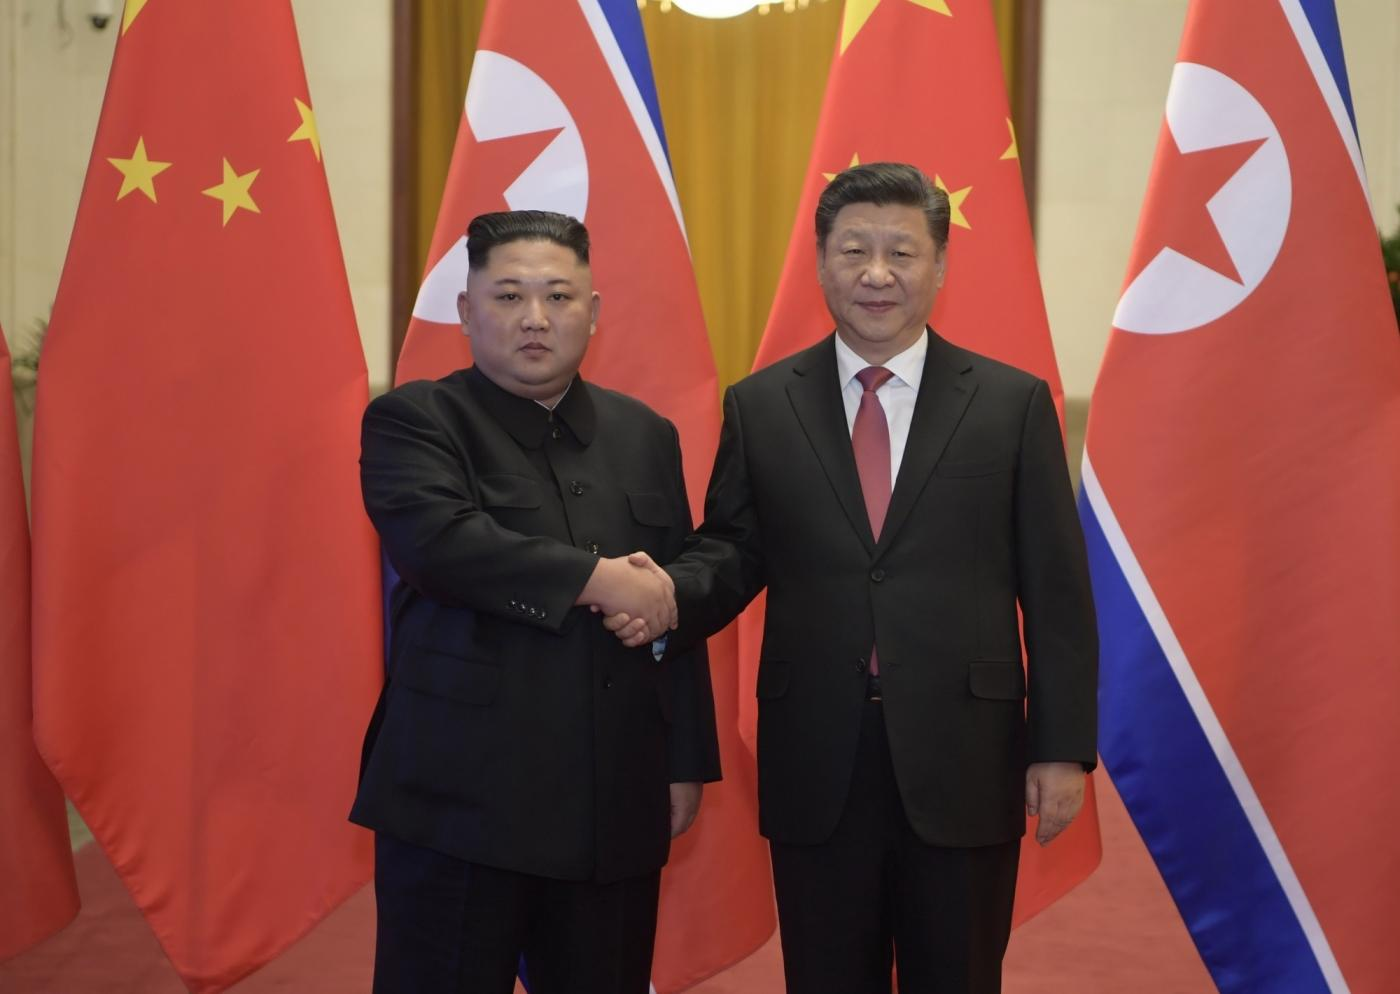 BEIJING, Jan. 10, 2019 (Xinhua) -- Xi Jinping (R), general secretary of the Central Committee of the Communist Party of China and Chinese president, holds a welcoming ceremony for Kim Jong Un, chairman of the Workers' Party of Korea and chairman of the State Affairs Commission of the Democratic People's Republic of Korea, before their talks at the Great Hall of the People in Beijing, capital of China, Jan. 8, 2019. Xi Jinping on Tuesday held talks with Kim Jong Un, who arrived in Beijing on the same day for a visit to China. (Xinhua/Li Xueren/IANS) by .